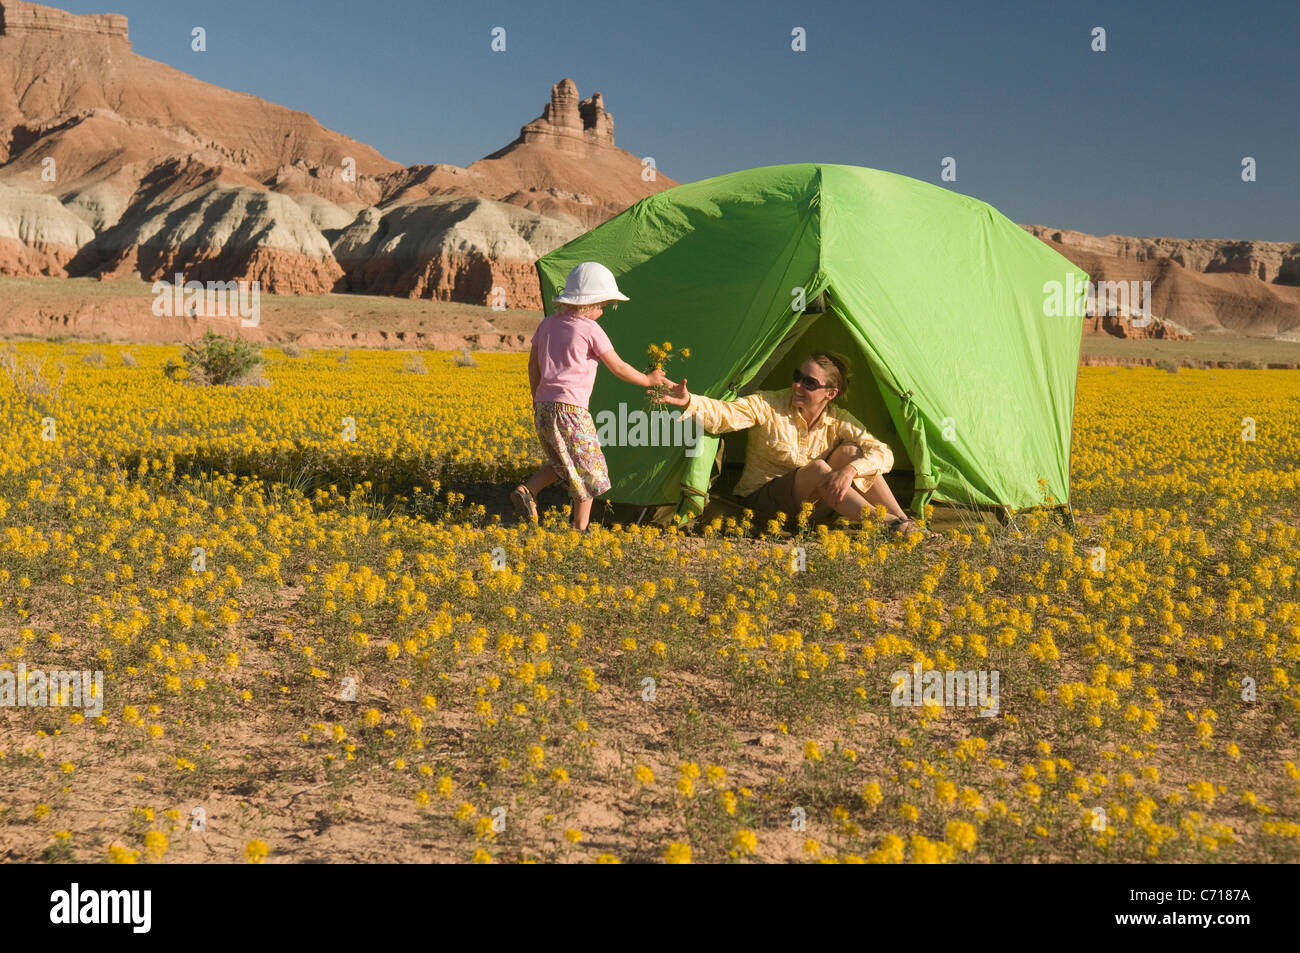 Daughter bringing flowers to mother in a tent, Hanksville, Utah. - Stock Image